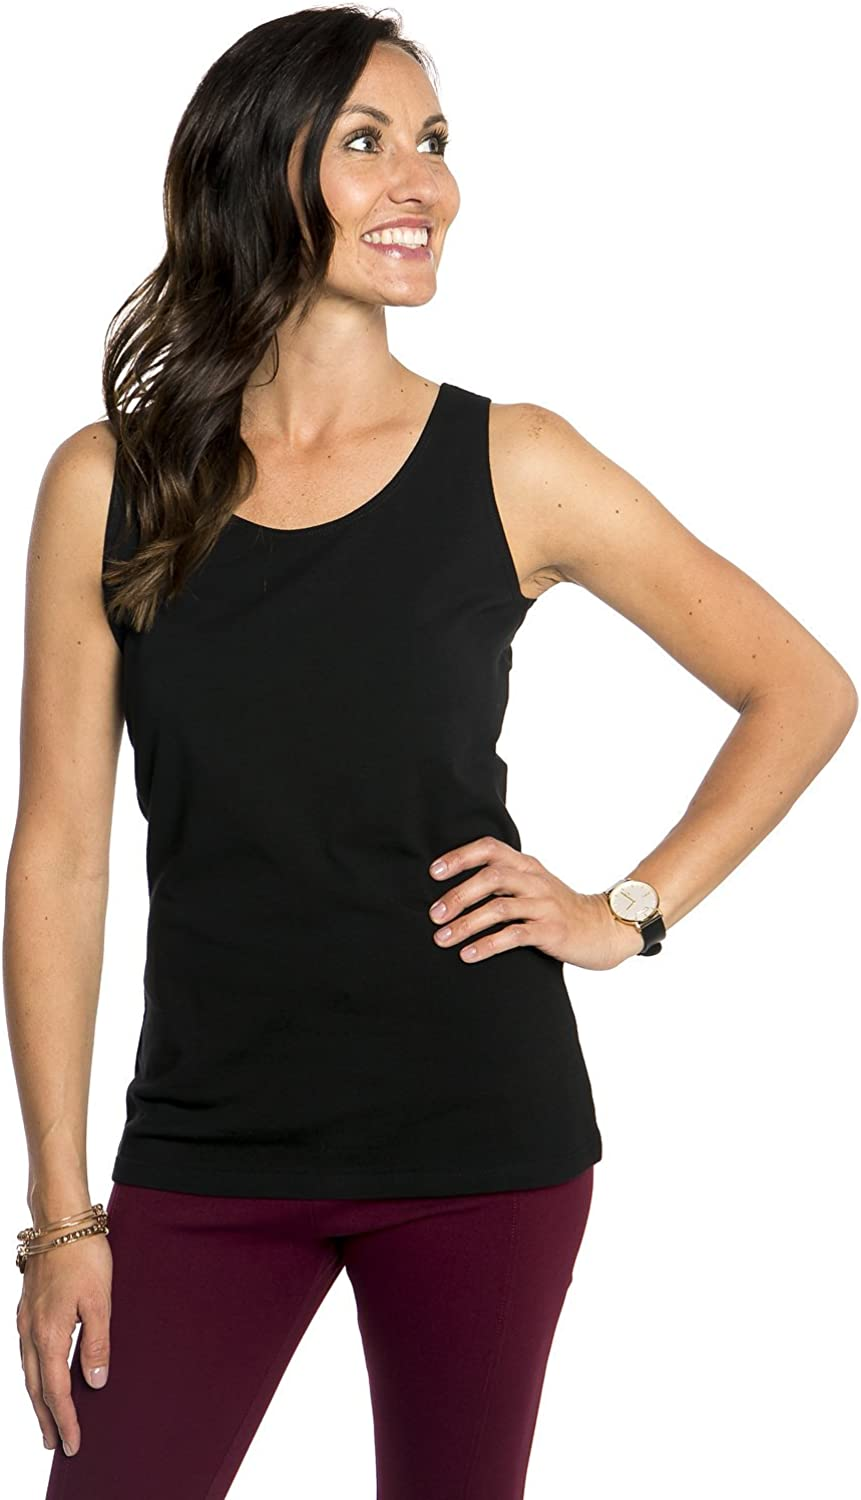 Heirloom Tank Top USA Made - Womens Thick Comfy Layering Shirt Dressy - Active